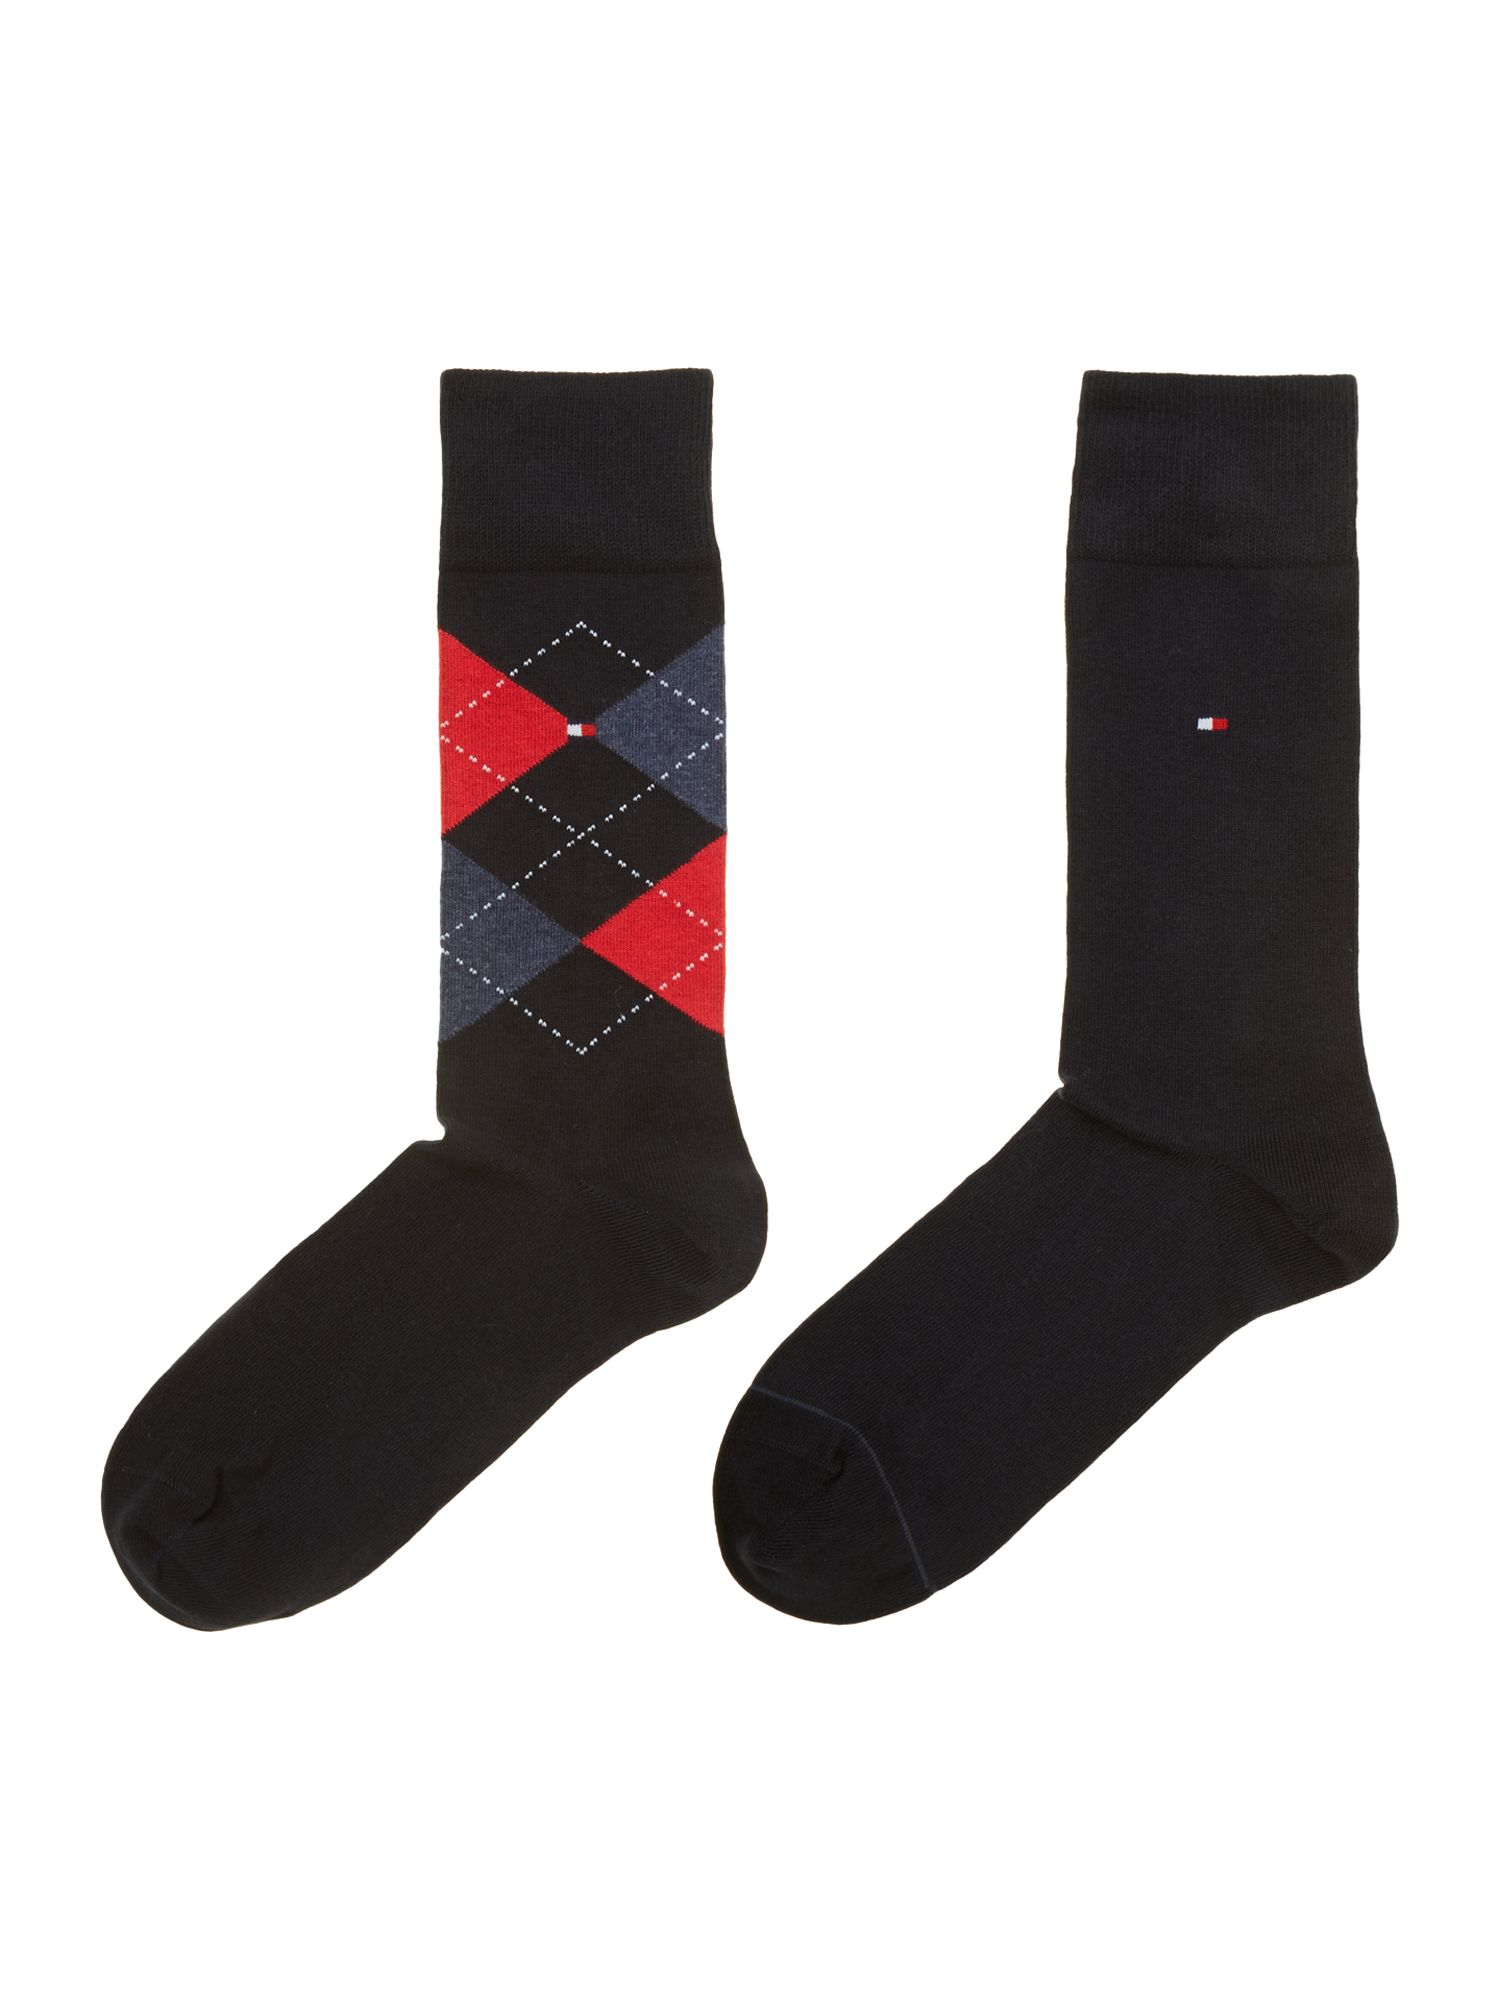 2 pack argyle and plain sock